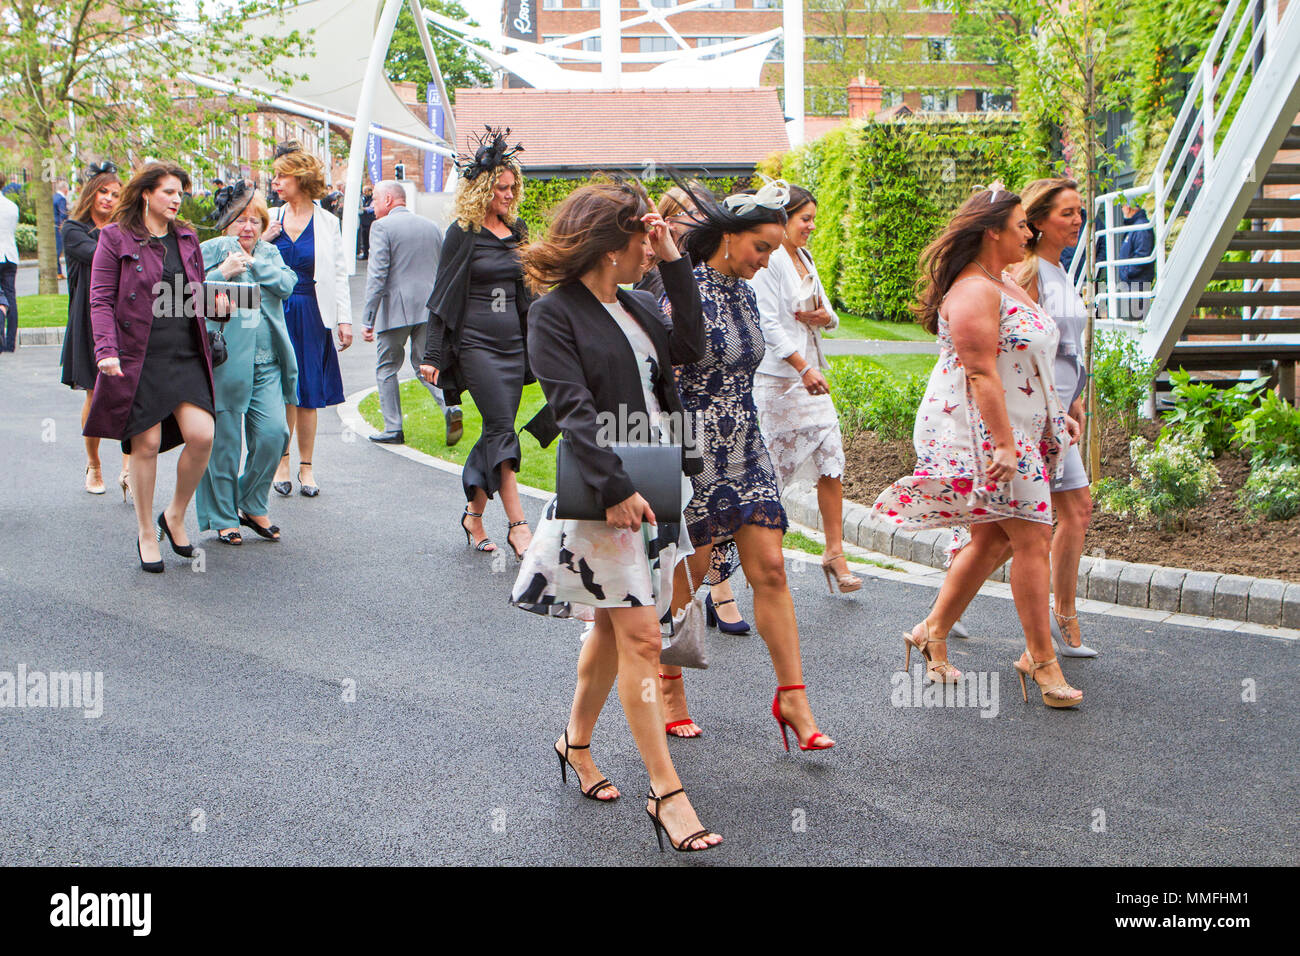 Boodles May Festival, Day 3 Chester Races. Chester, UK. 11th May 2018.  Bets a plenty on this huge horse racing event on the third day of the Boodles May Festival at the Chester racecourse.  High spirits and fine fashions were the order of the day as racegoers flocked in to this fabulous event in the horse racing calendar.  Credit: Cernan Elias/Alamy Live News - Stock Image